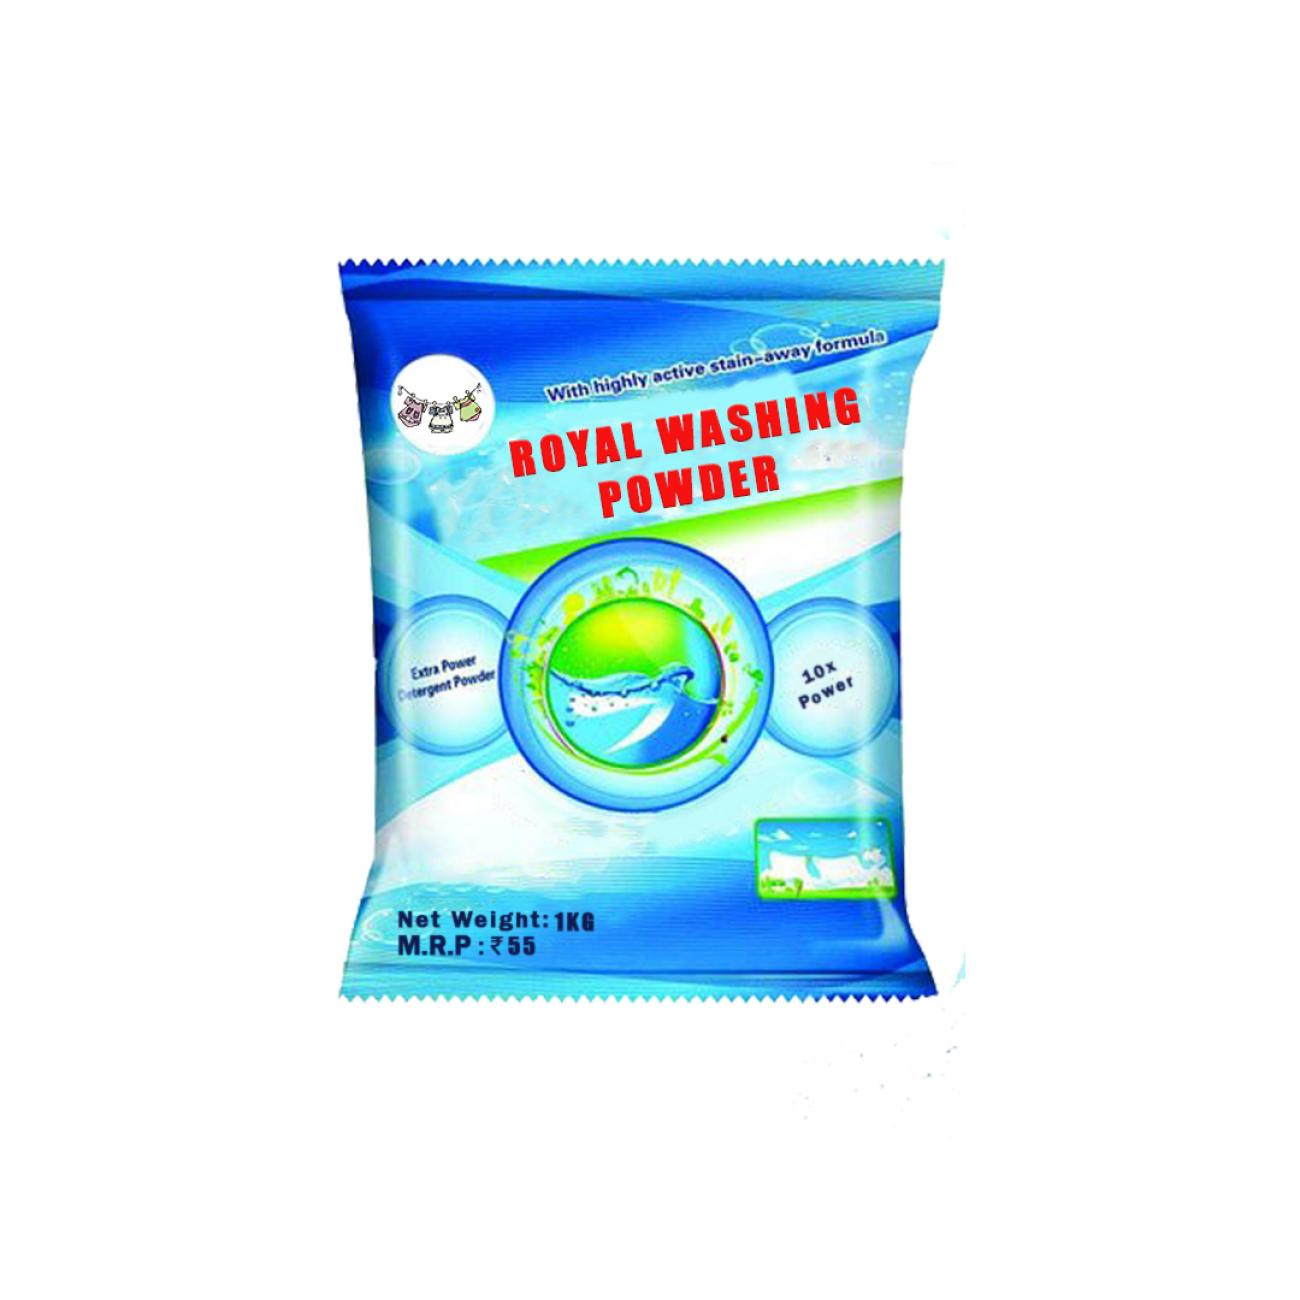 Washing powder 1Kg